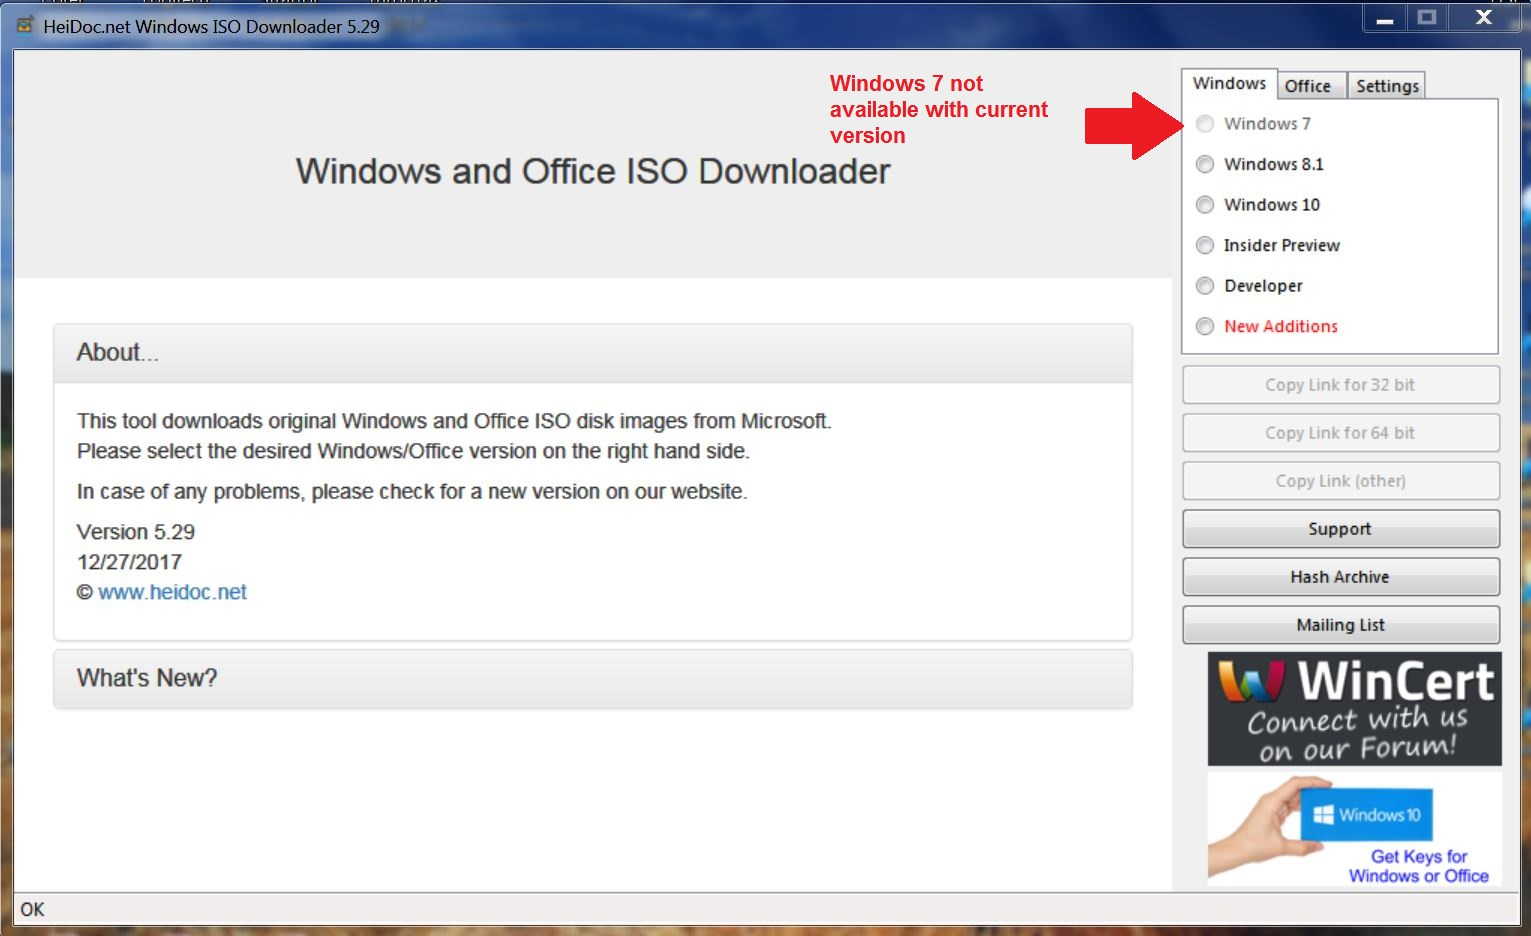 microsoft windows and office iso download tool heidoc